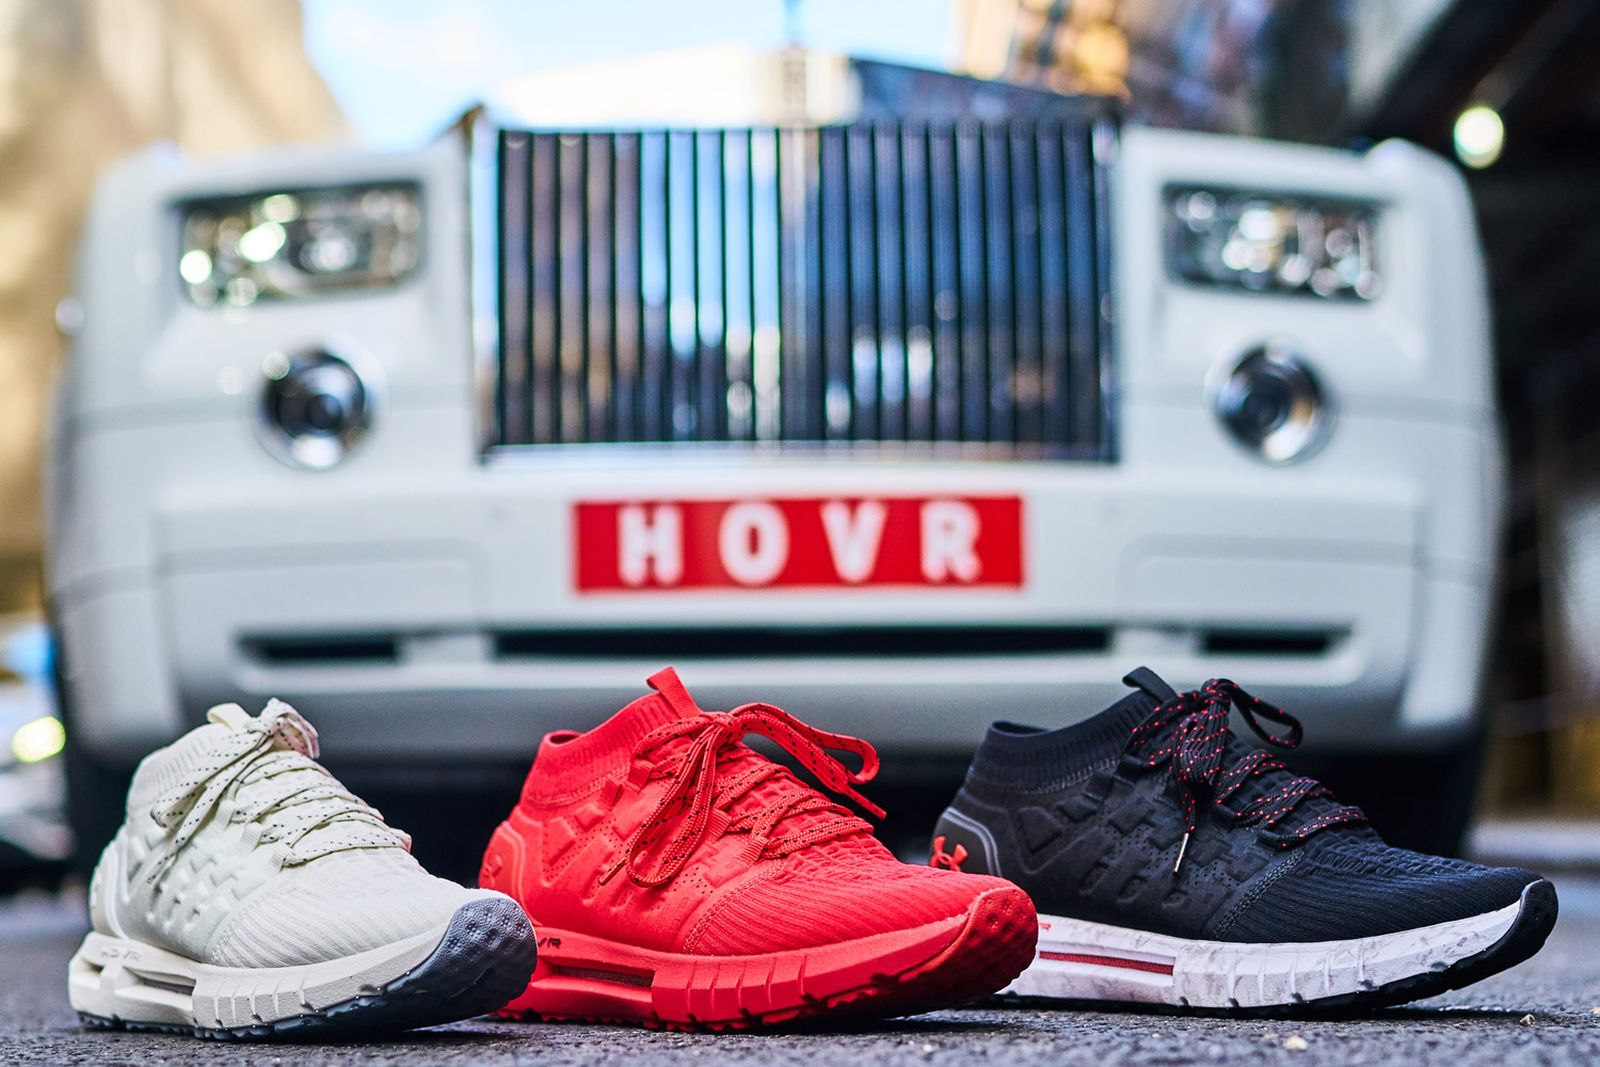 under-armour-hovr-launch-01